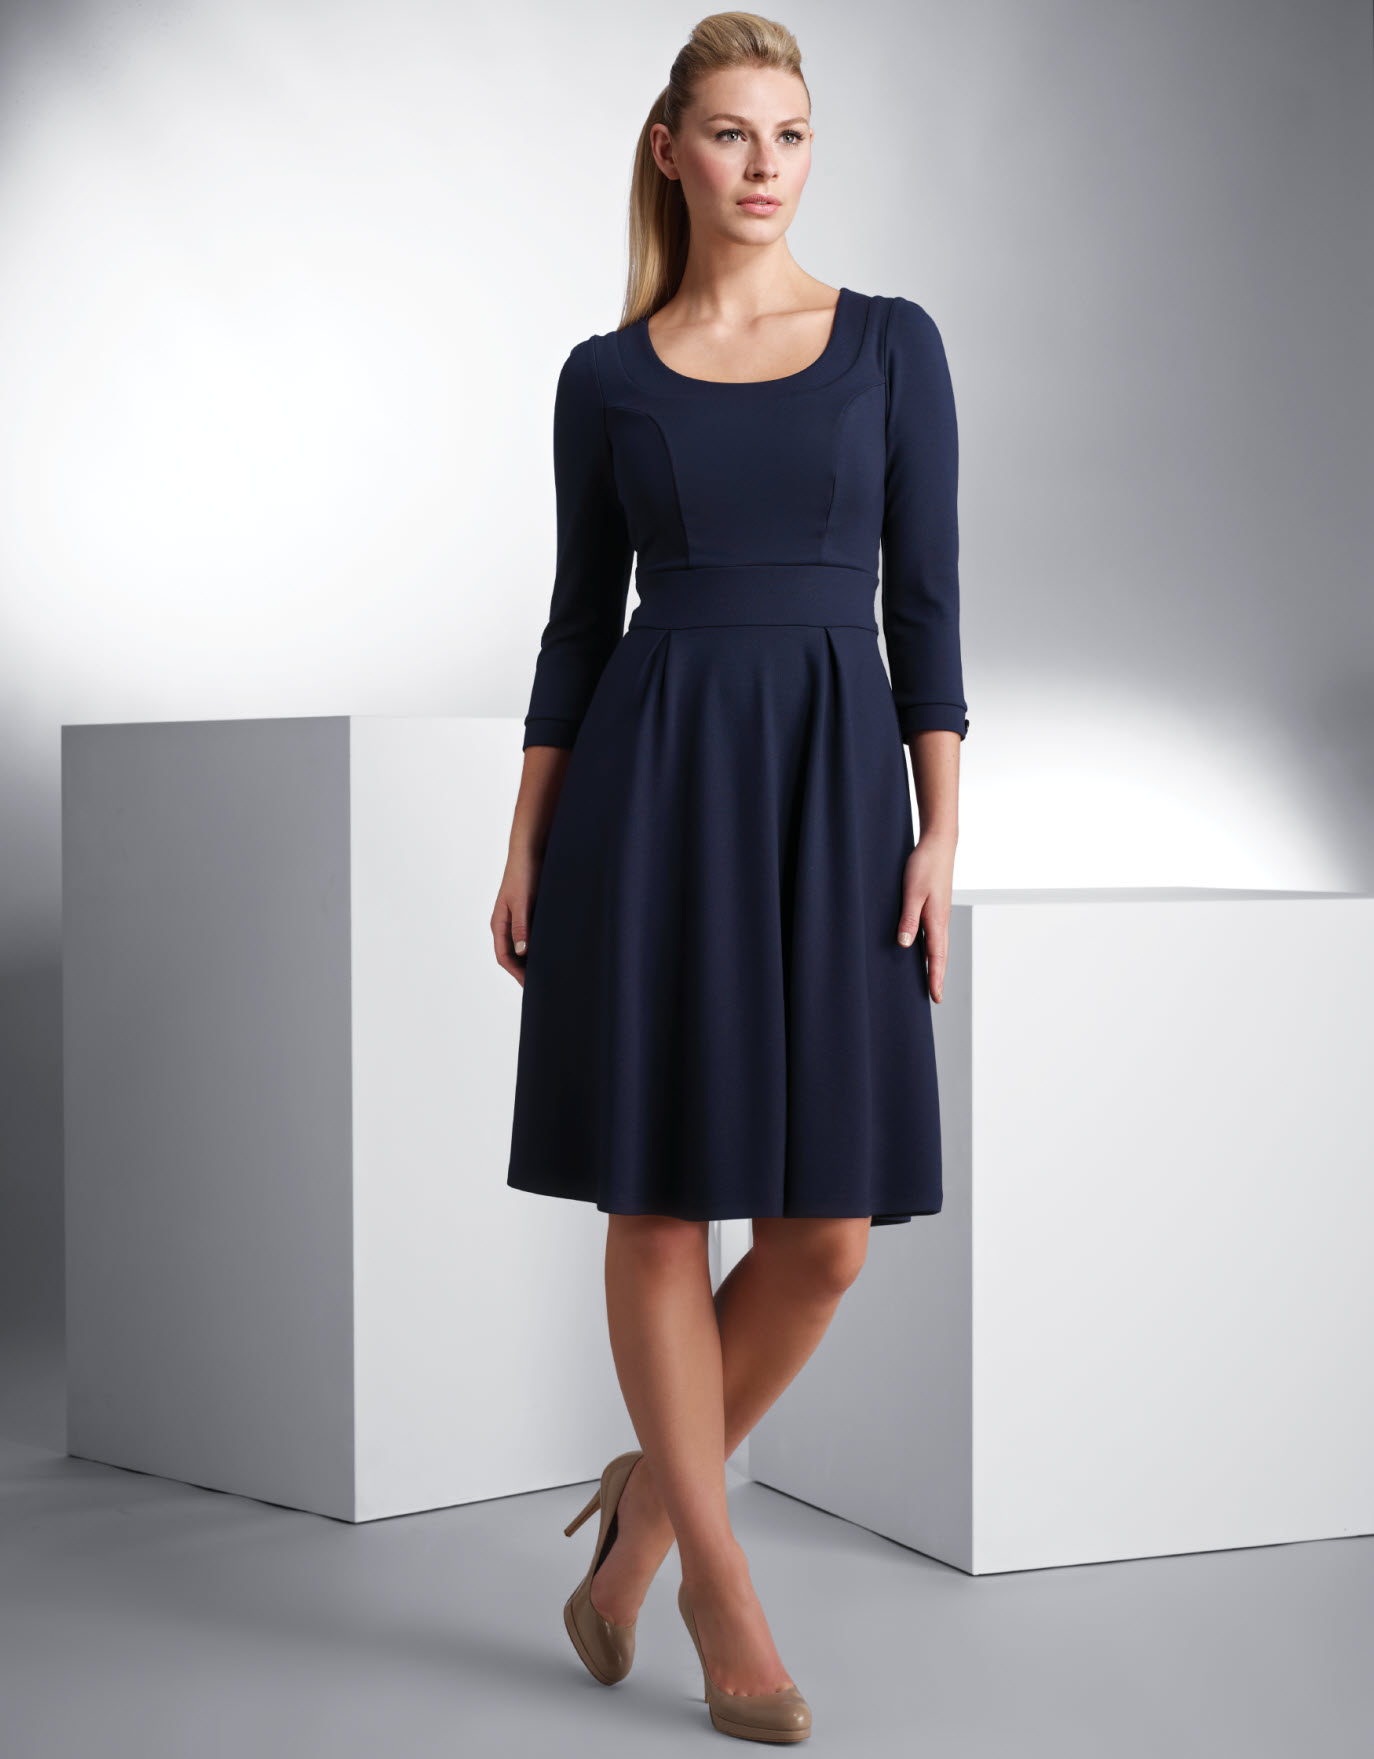 Ponti Skater Dress.  Available in sizes 08-18 (UK) Curvy/Really Curvy and Really Curvy/Super Curvy.  £59.00 (about $94.50 USD)